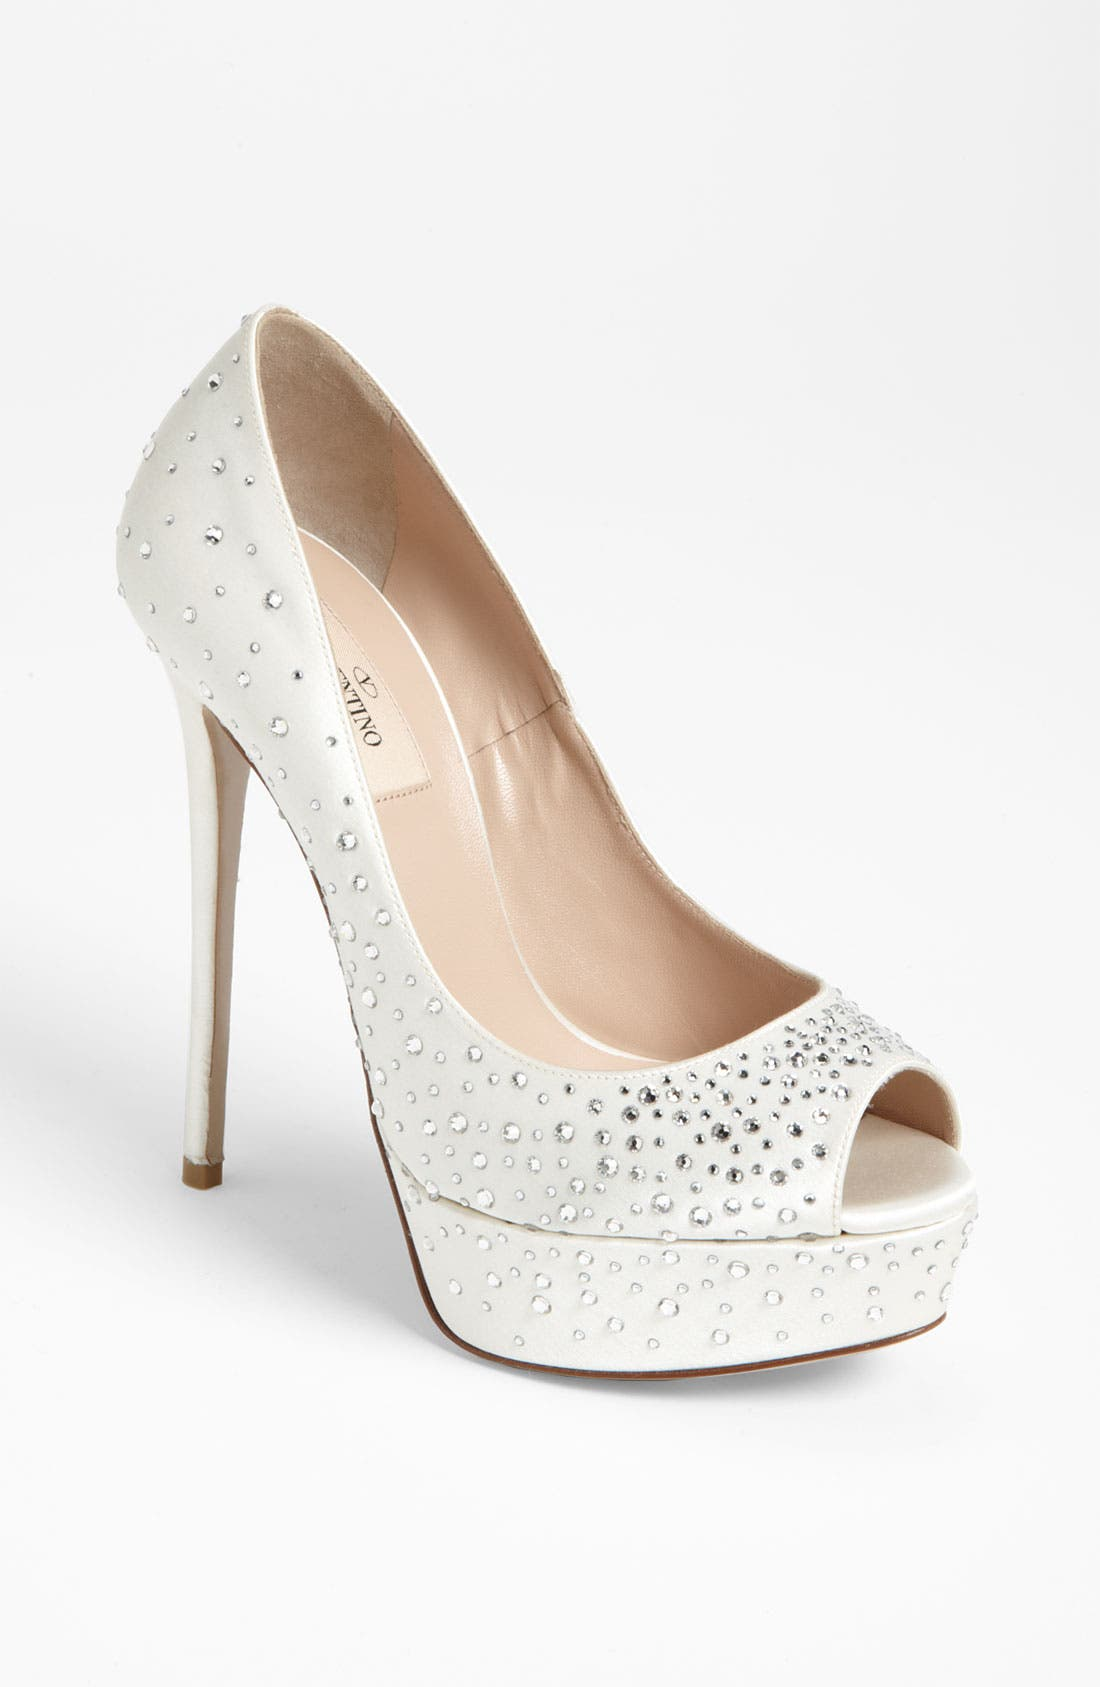 Main Image - VALENTINO GARAVANI 'Bridal' Open Toe Pump